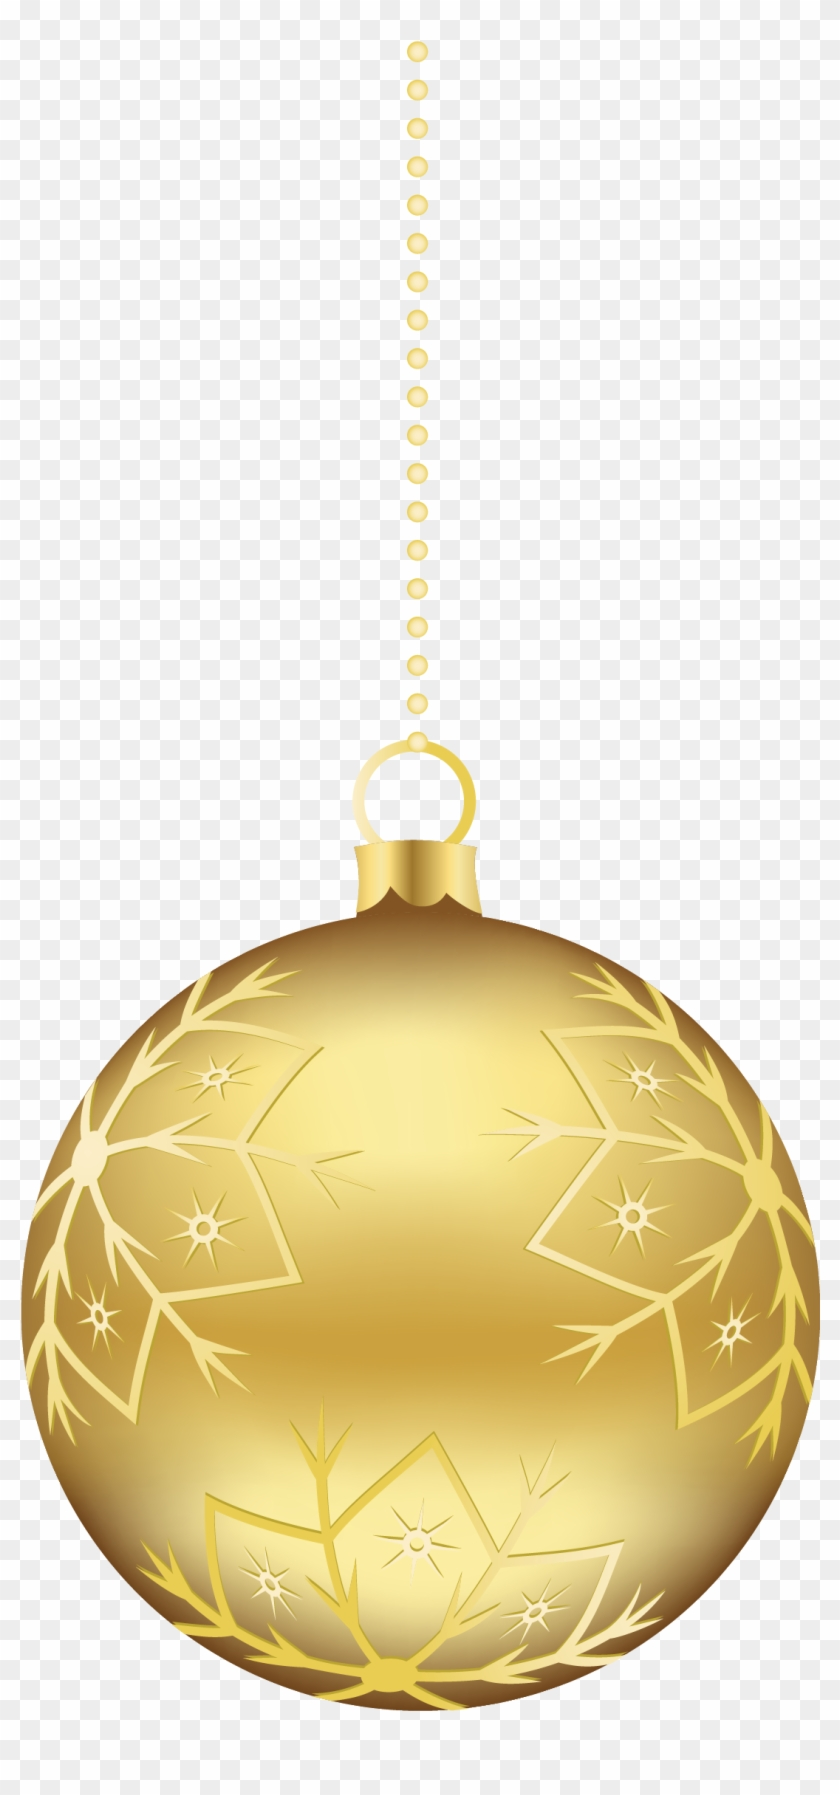 Png Christmas Decorations.Gold Christmas Decorations Home Decorating Ideas Gold